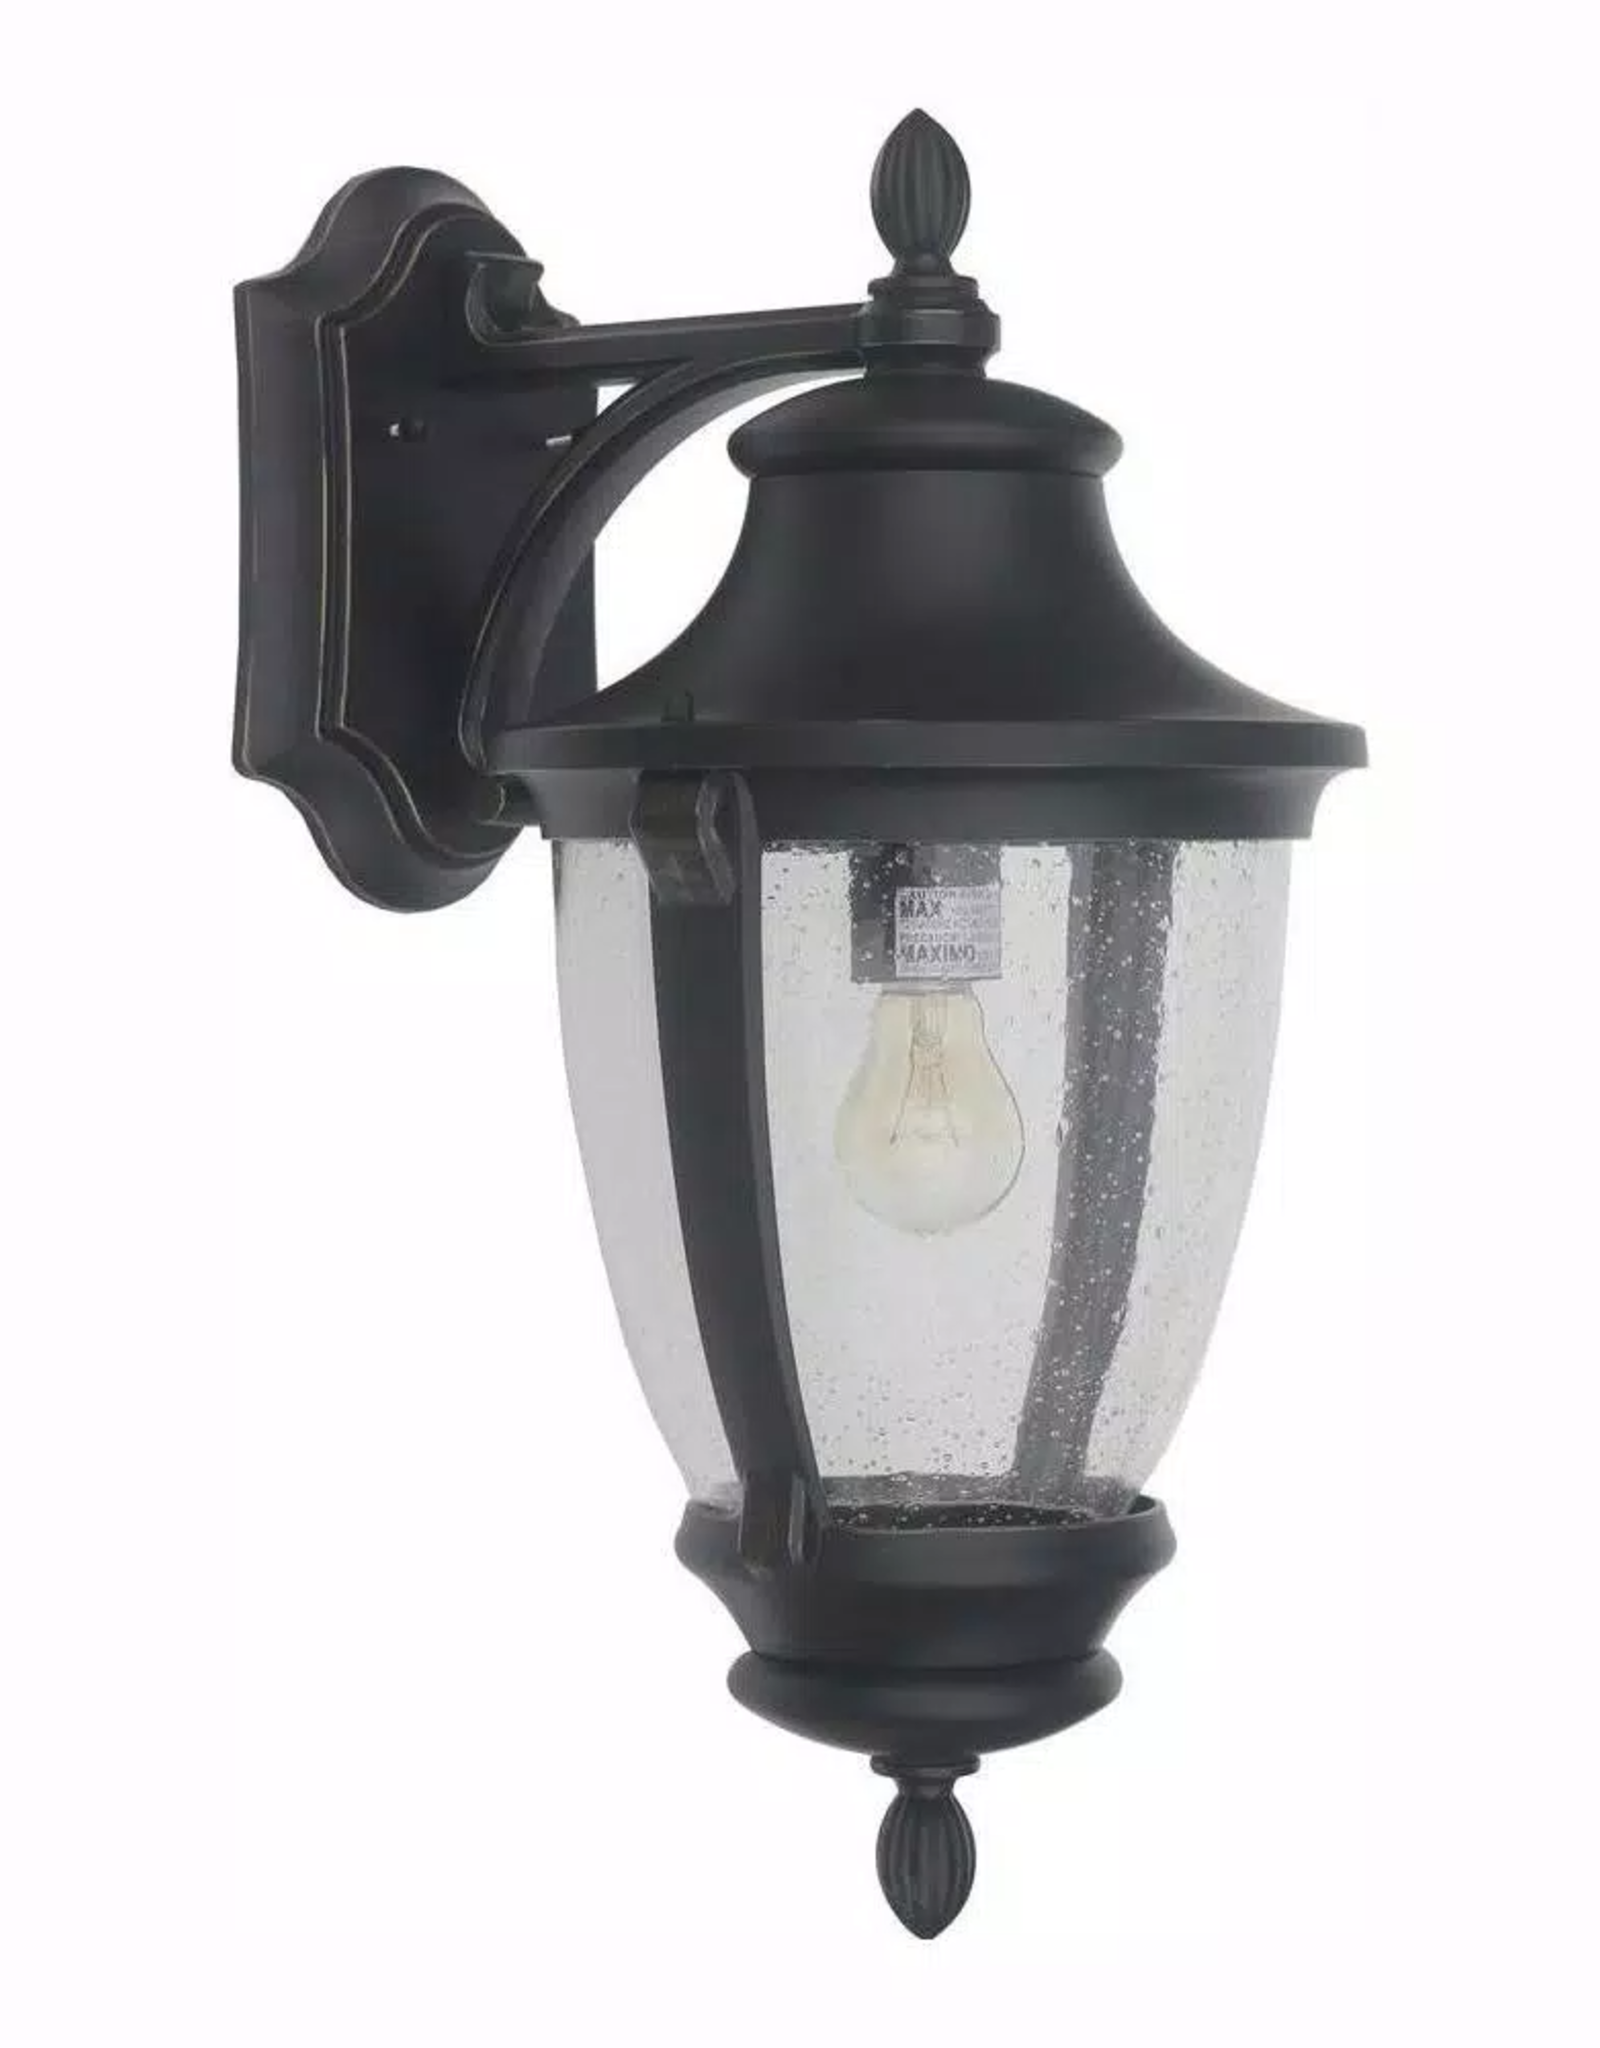 Home Decorators Collection Wilkerson 1-Light Black Outdoor Wall Lantern Sconce